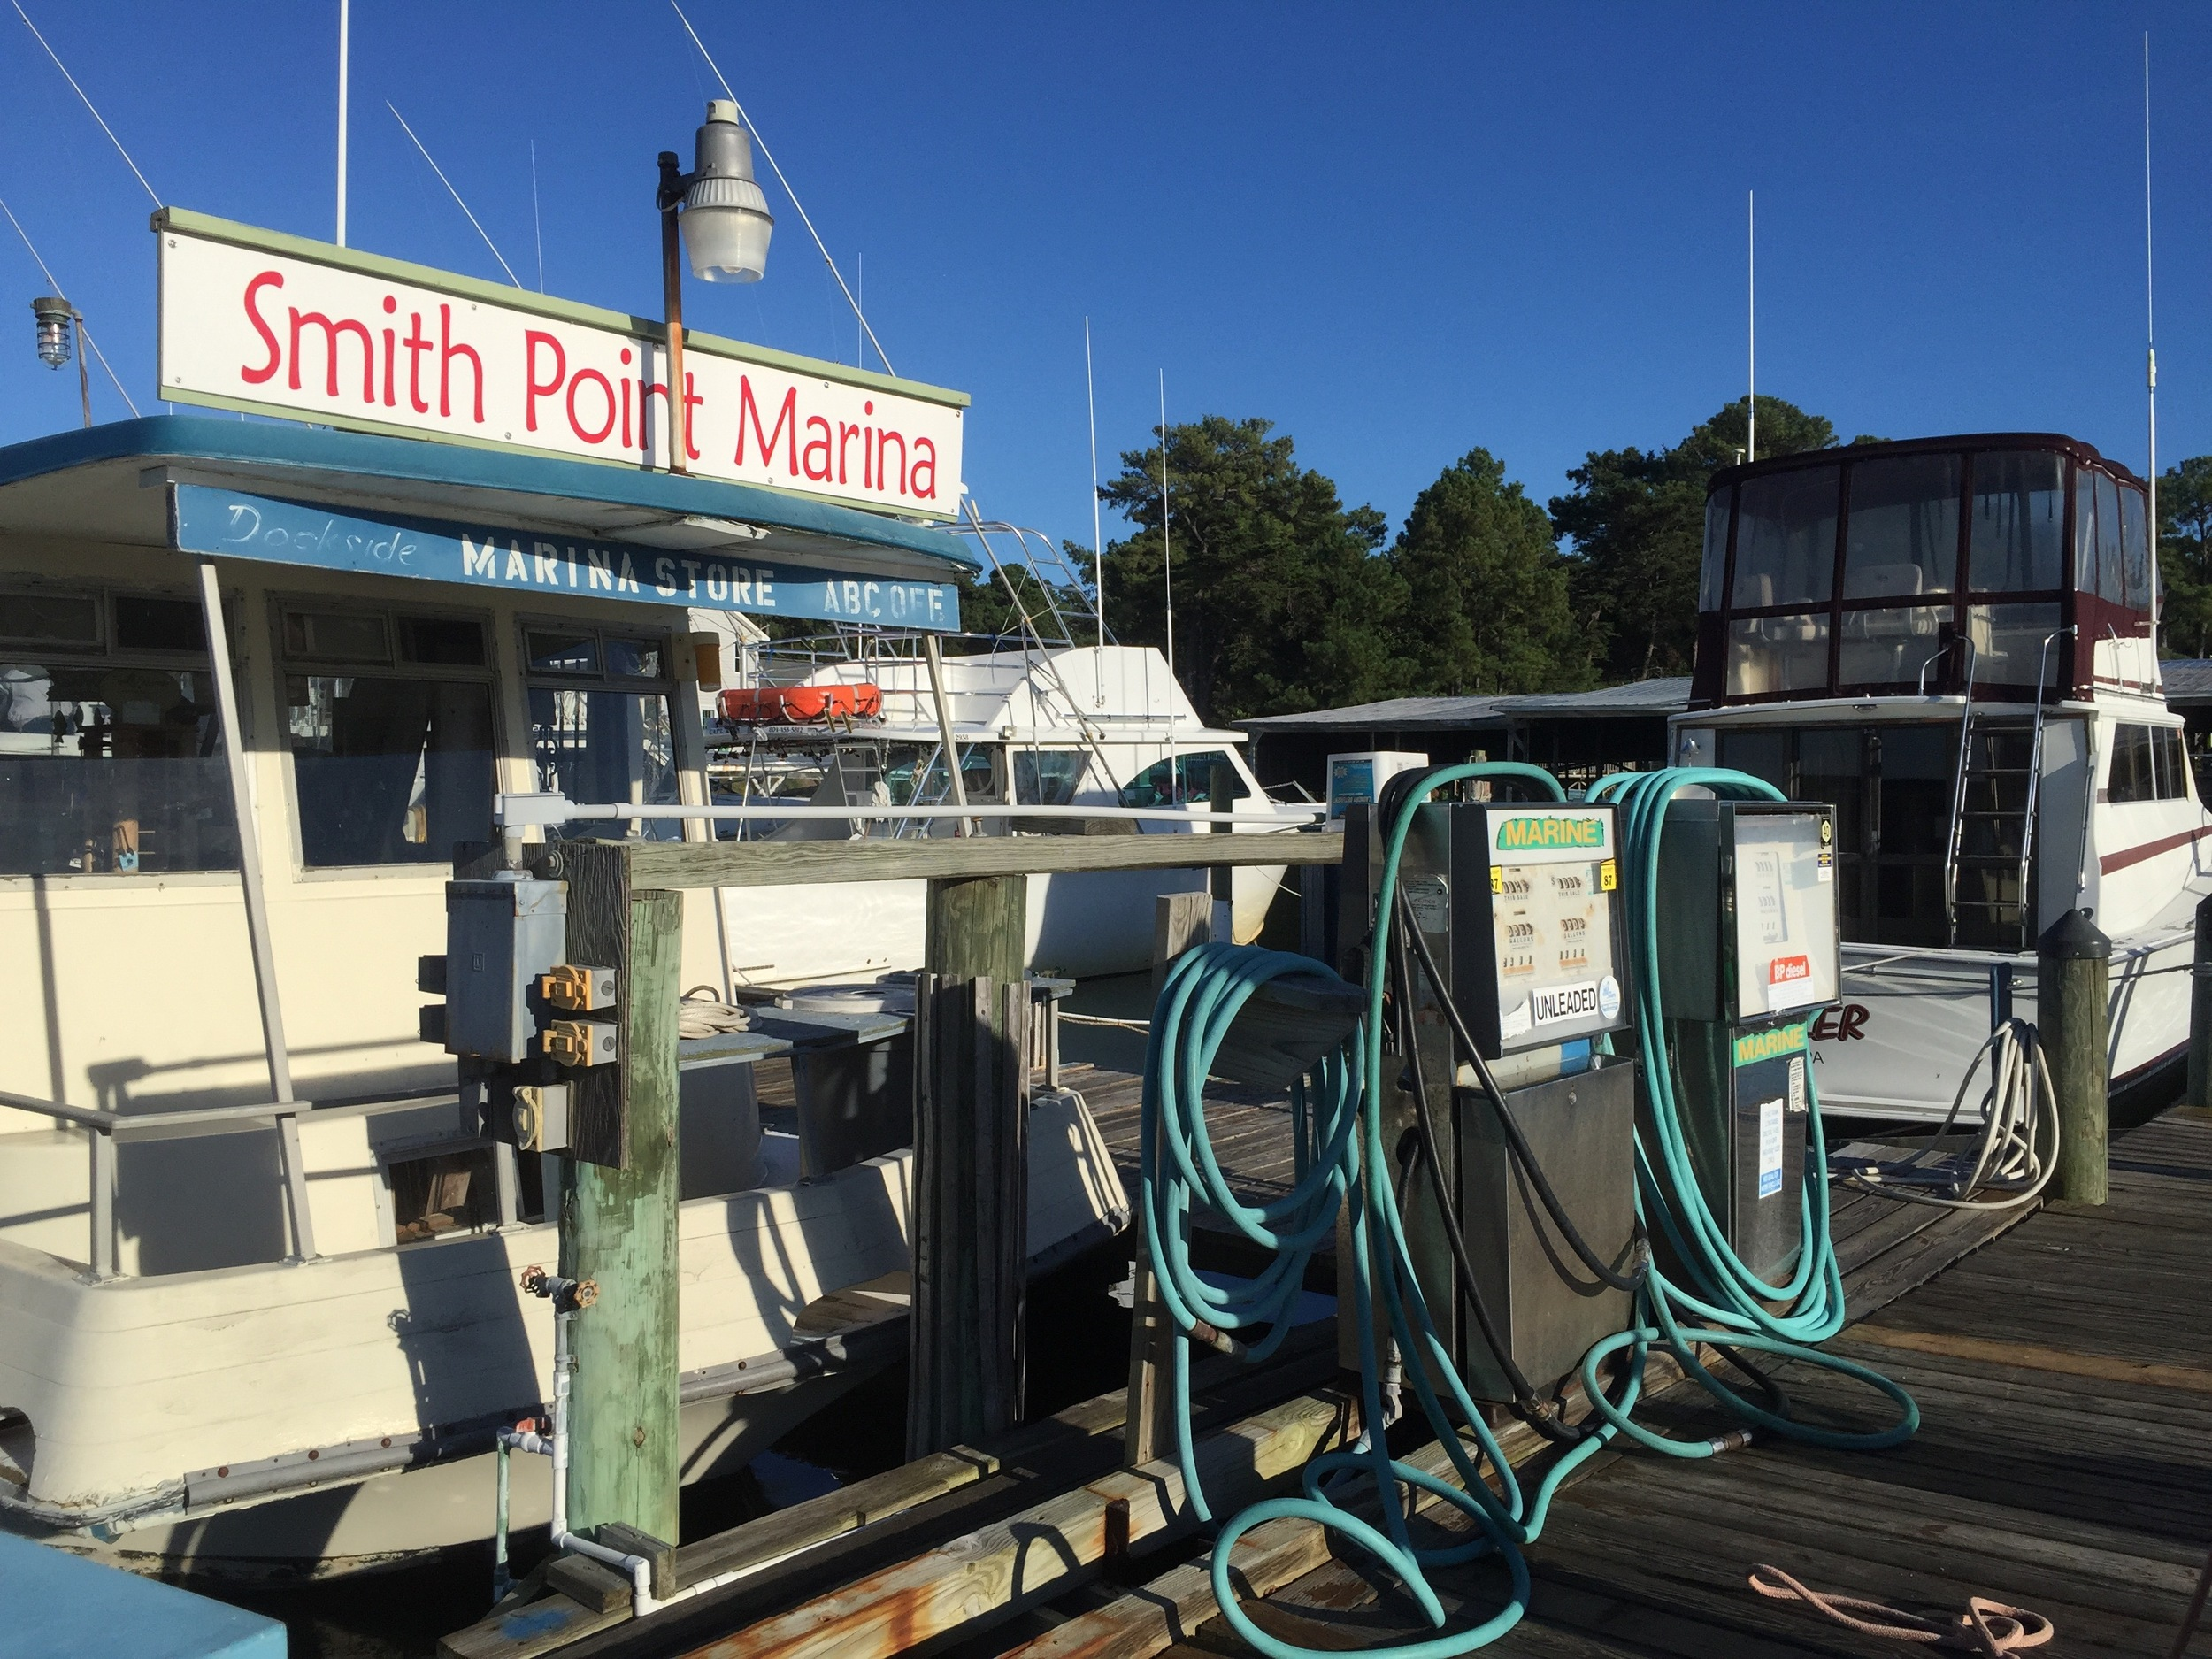 Smith Point Marina marine gas station. Photo by Meg Wallen.